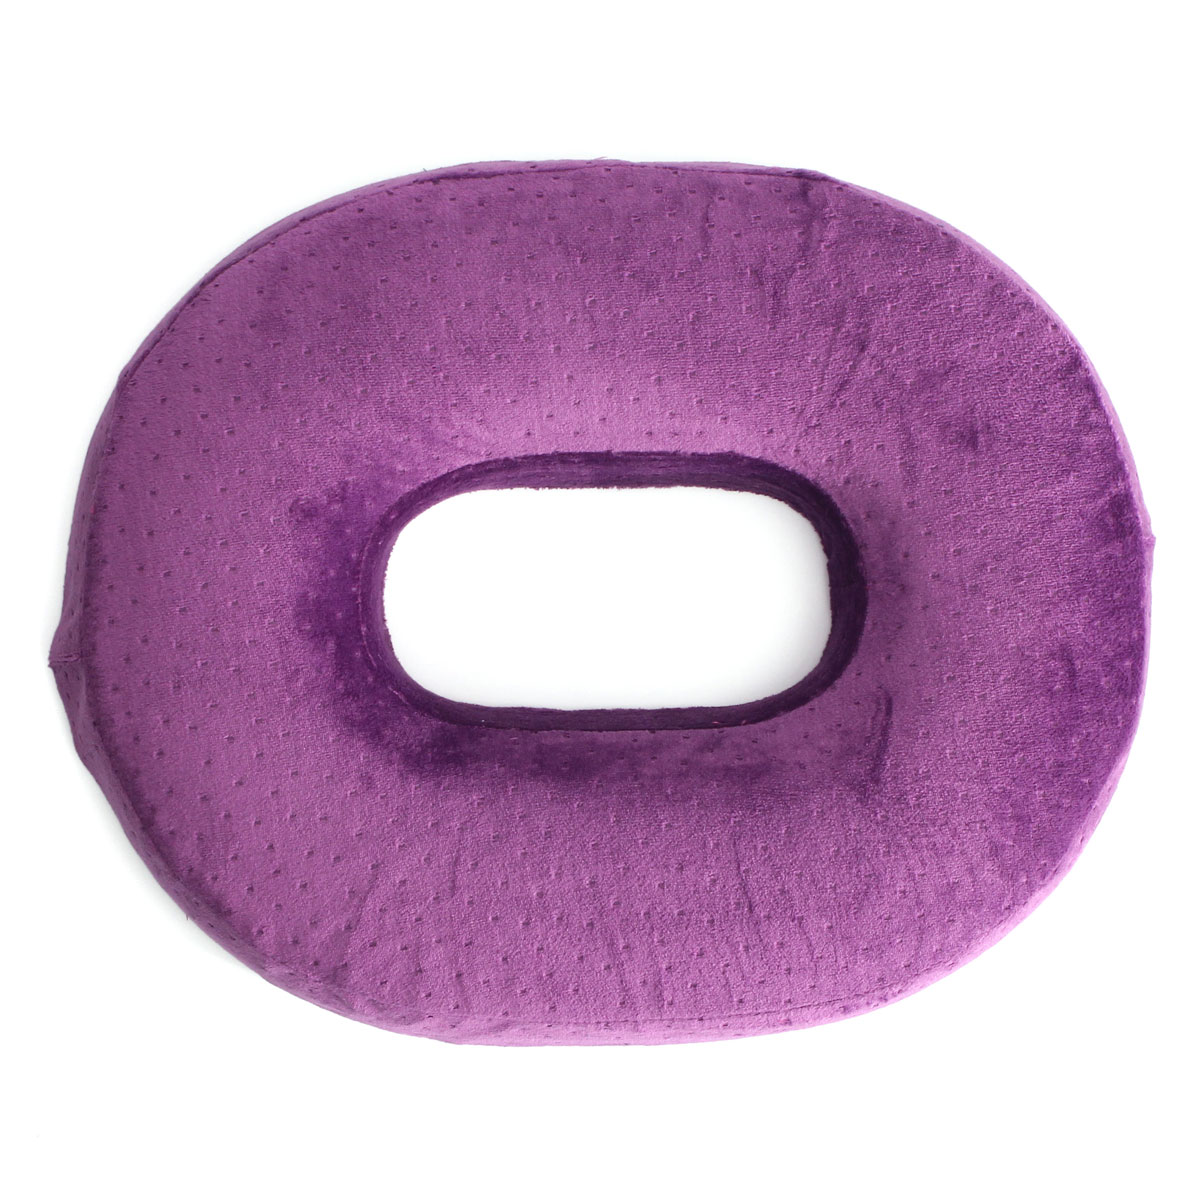 Pain Relief Donut Seat Ring Back Tailbone Support Seat Cushion Comfort Memory Foam Massagers Pillow for Home Office Car